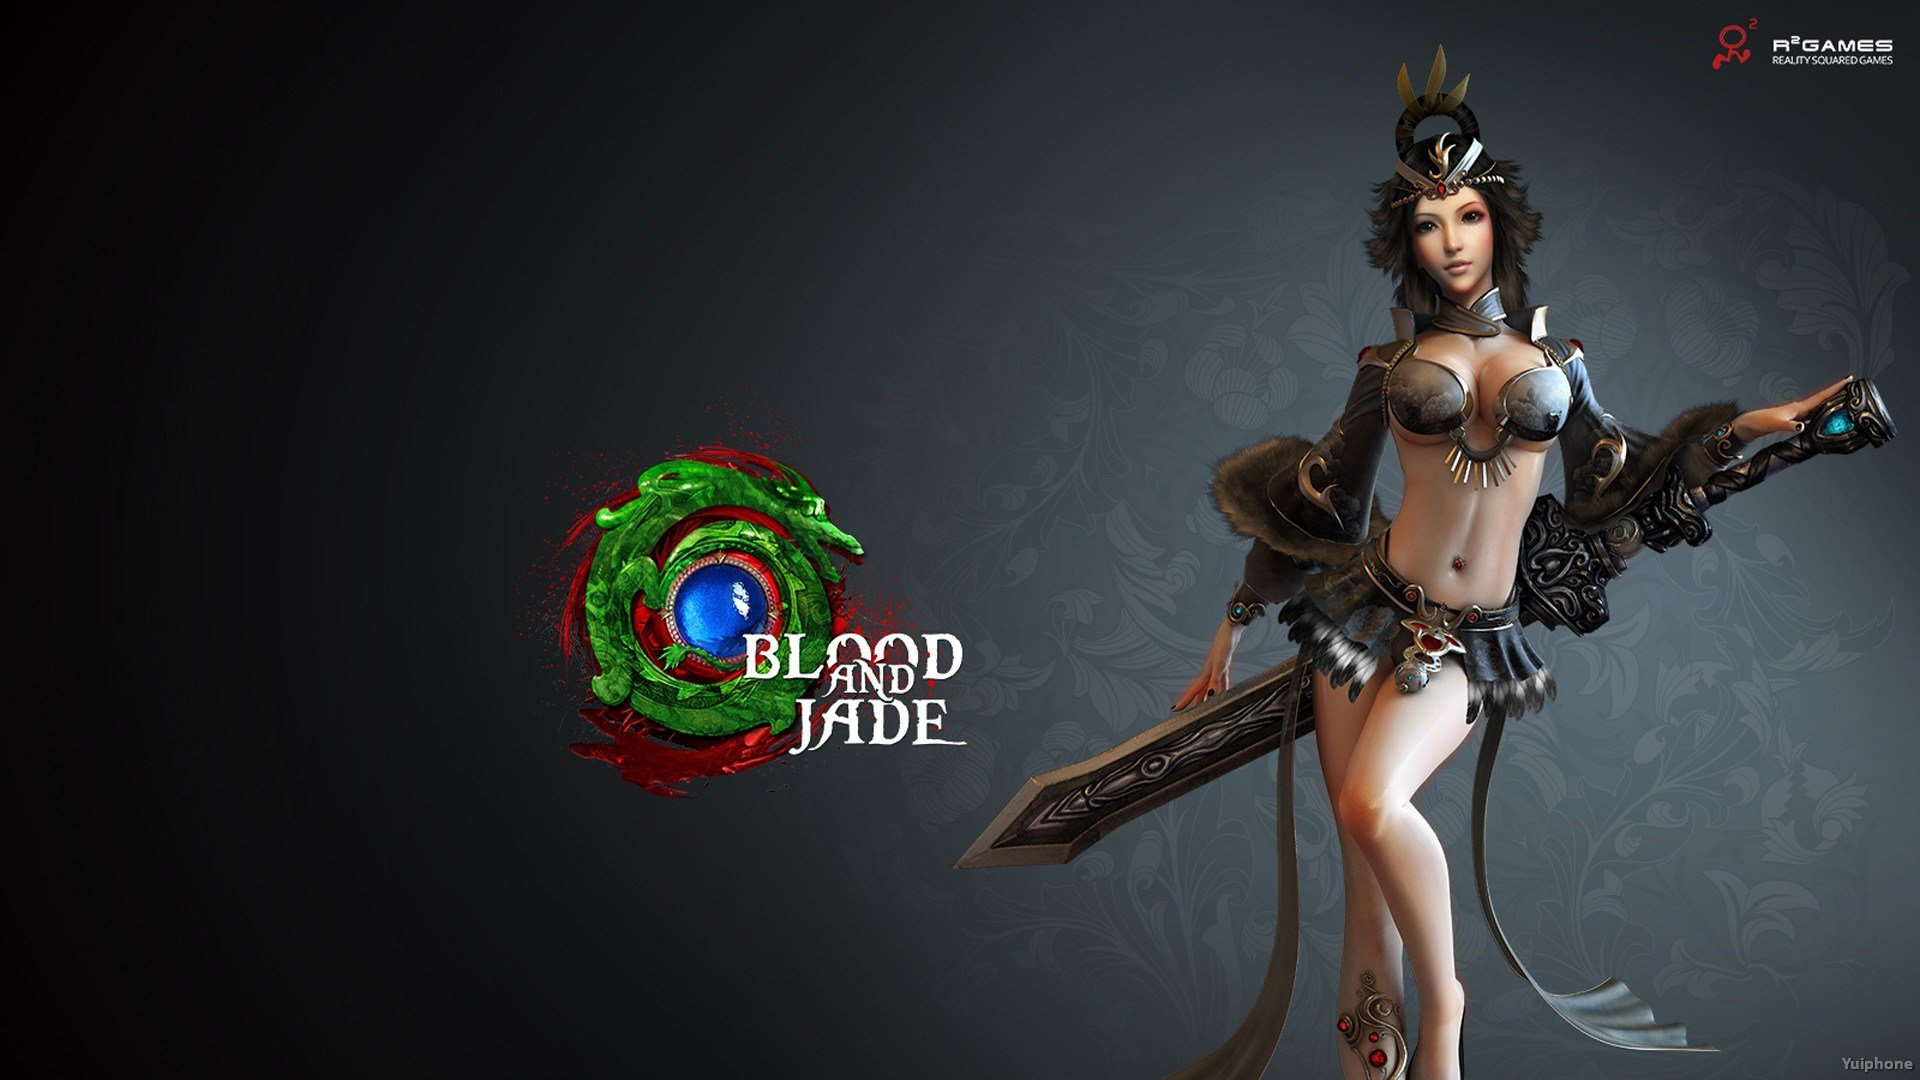 Blood and jade game porn pornos pictures